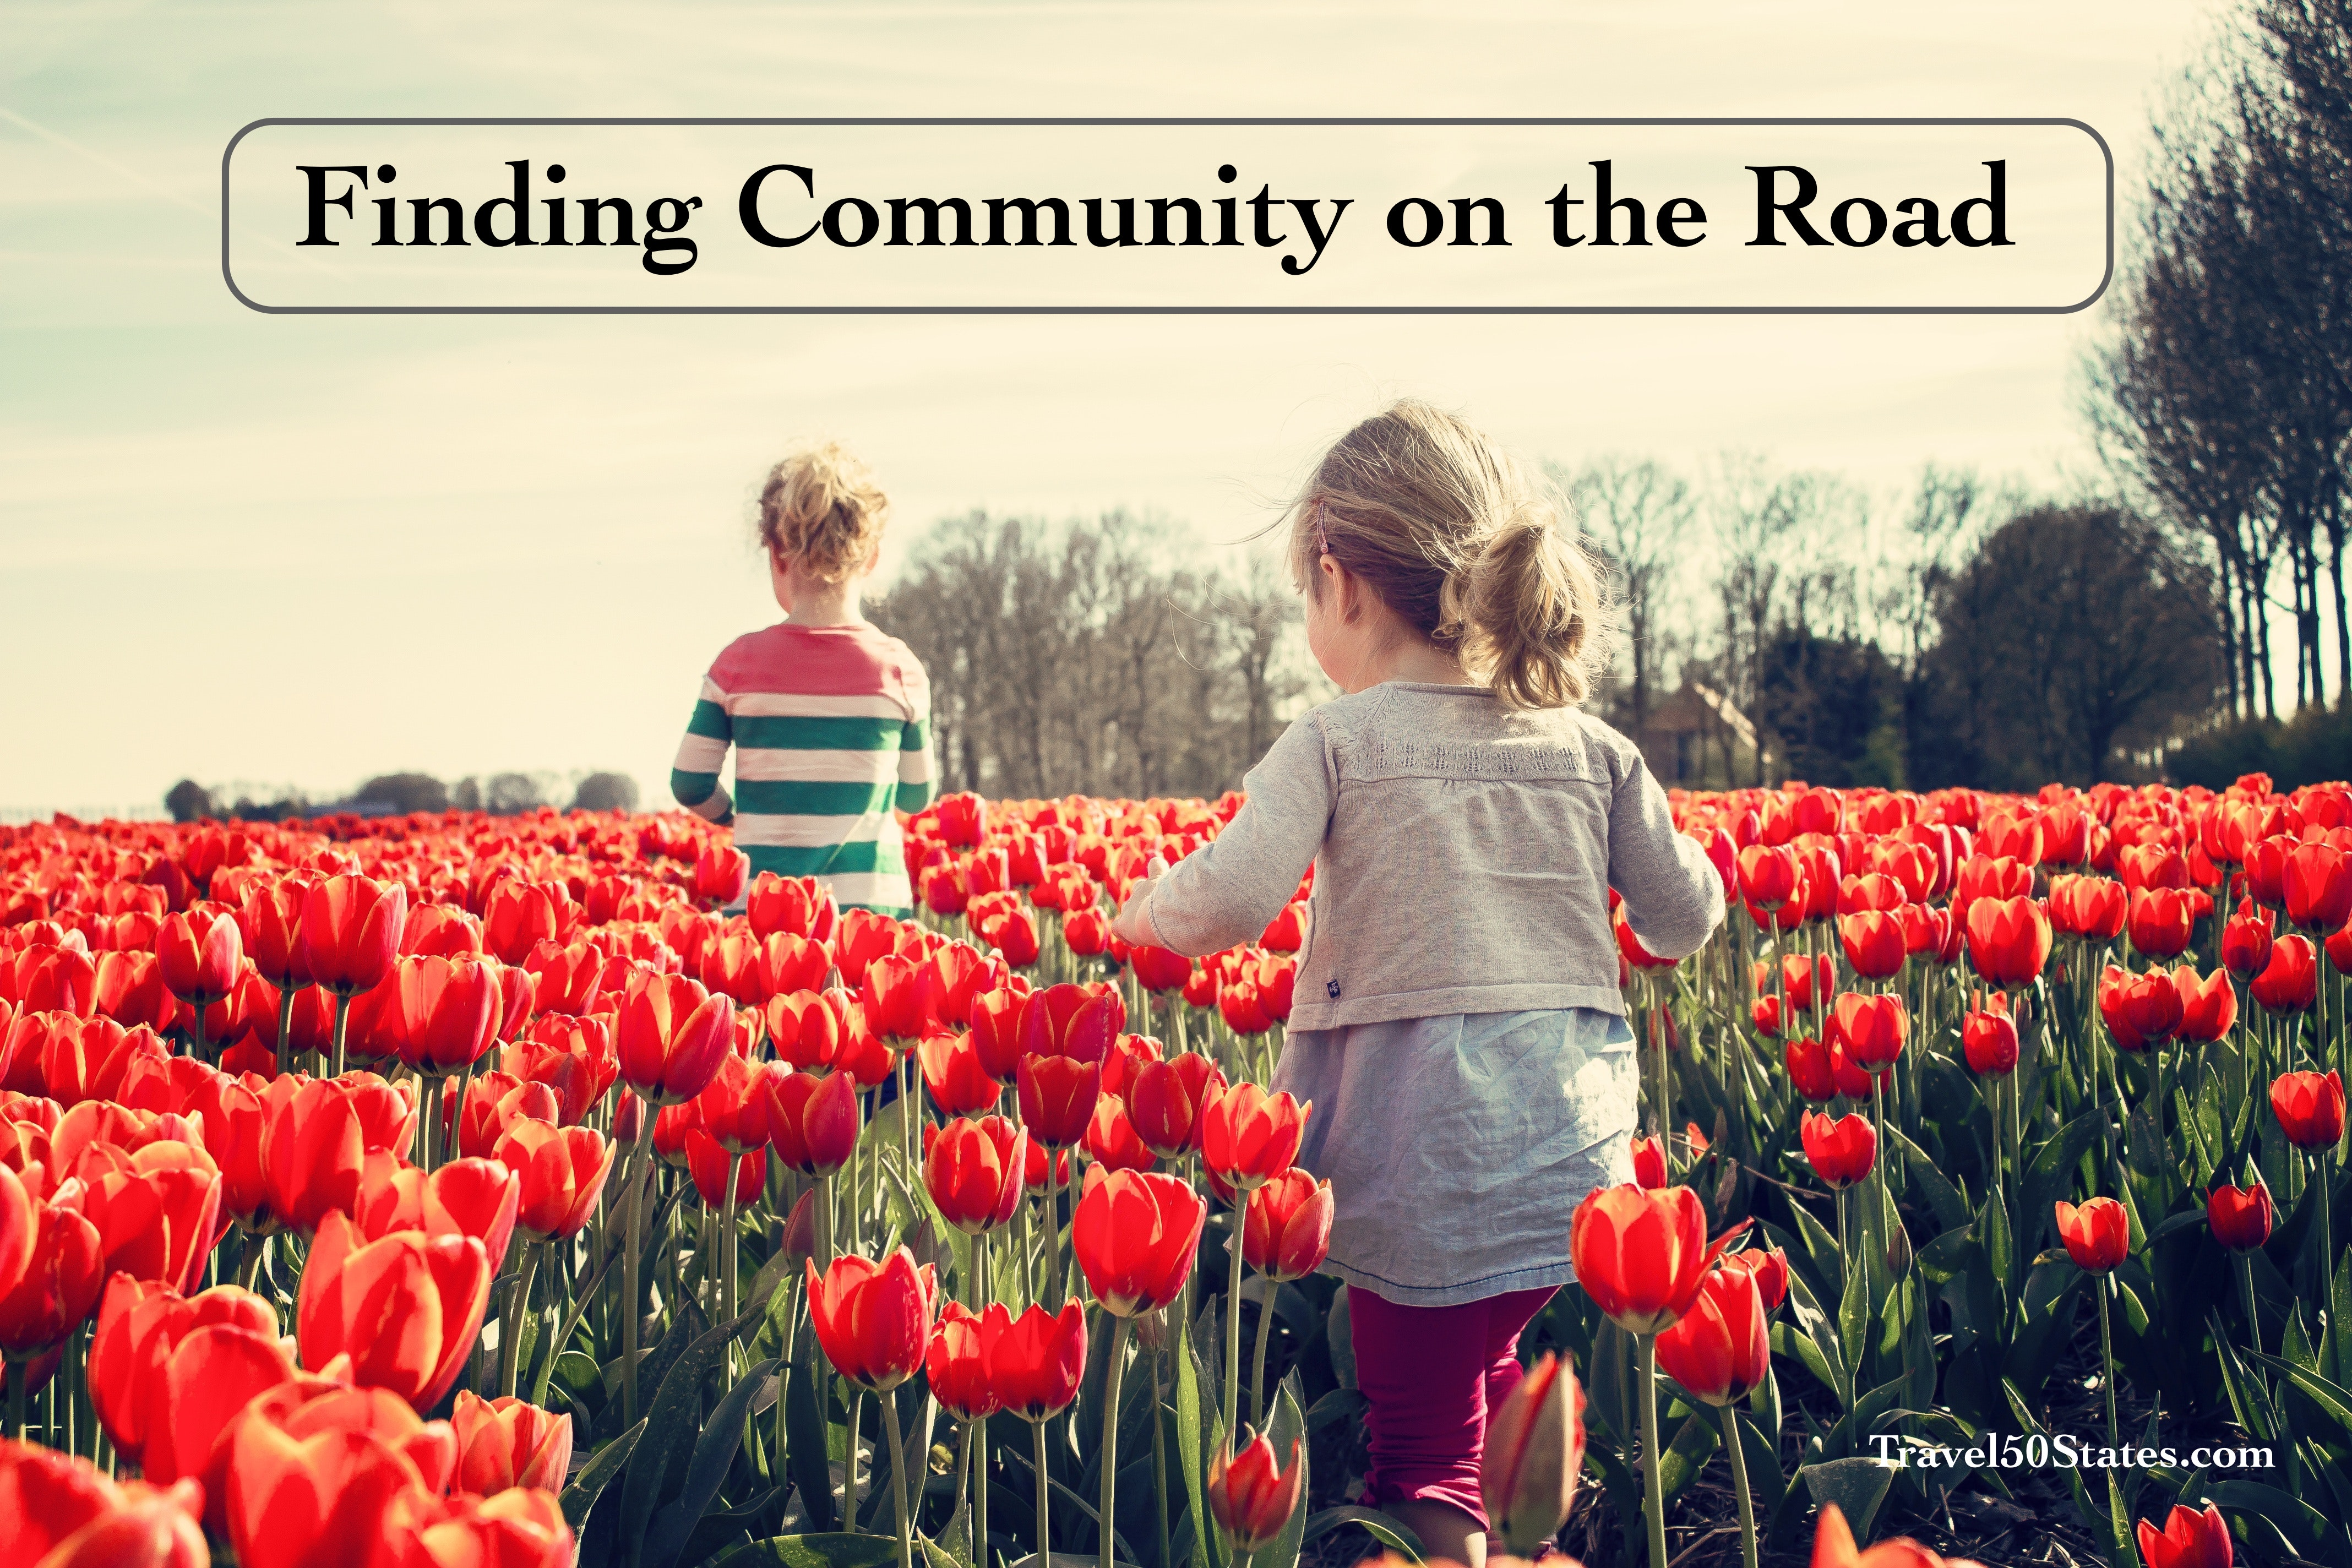 Finding Community on the Road